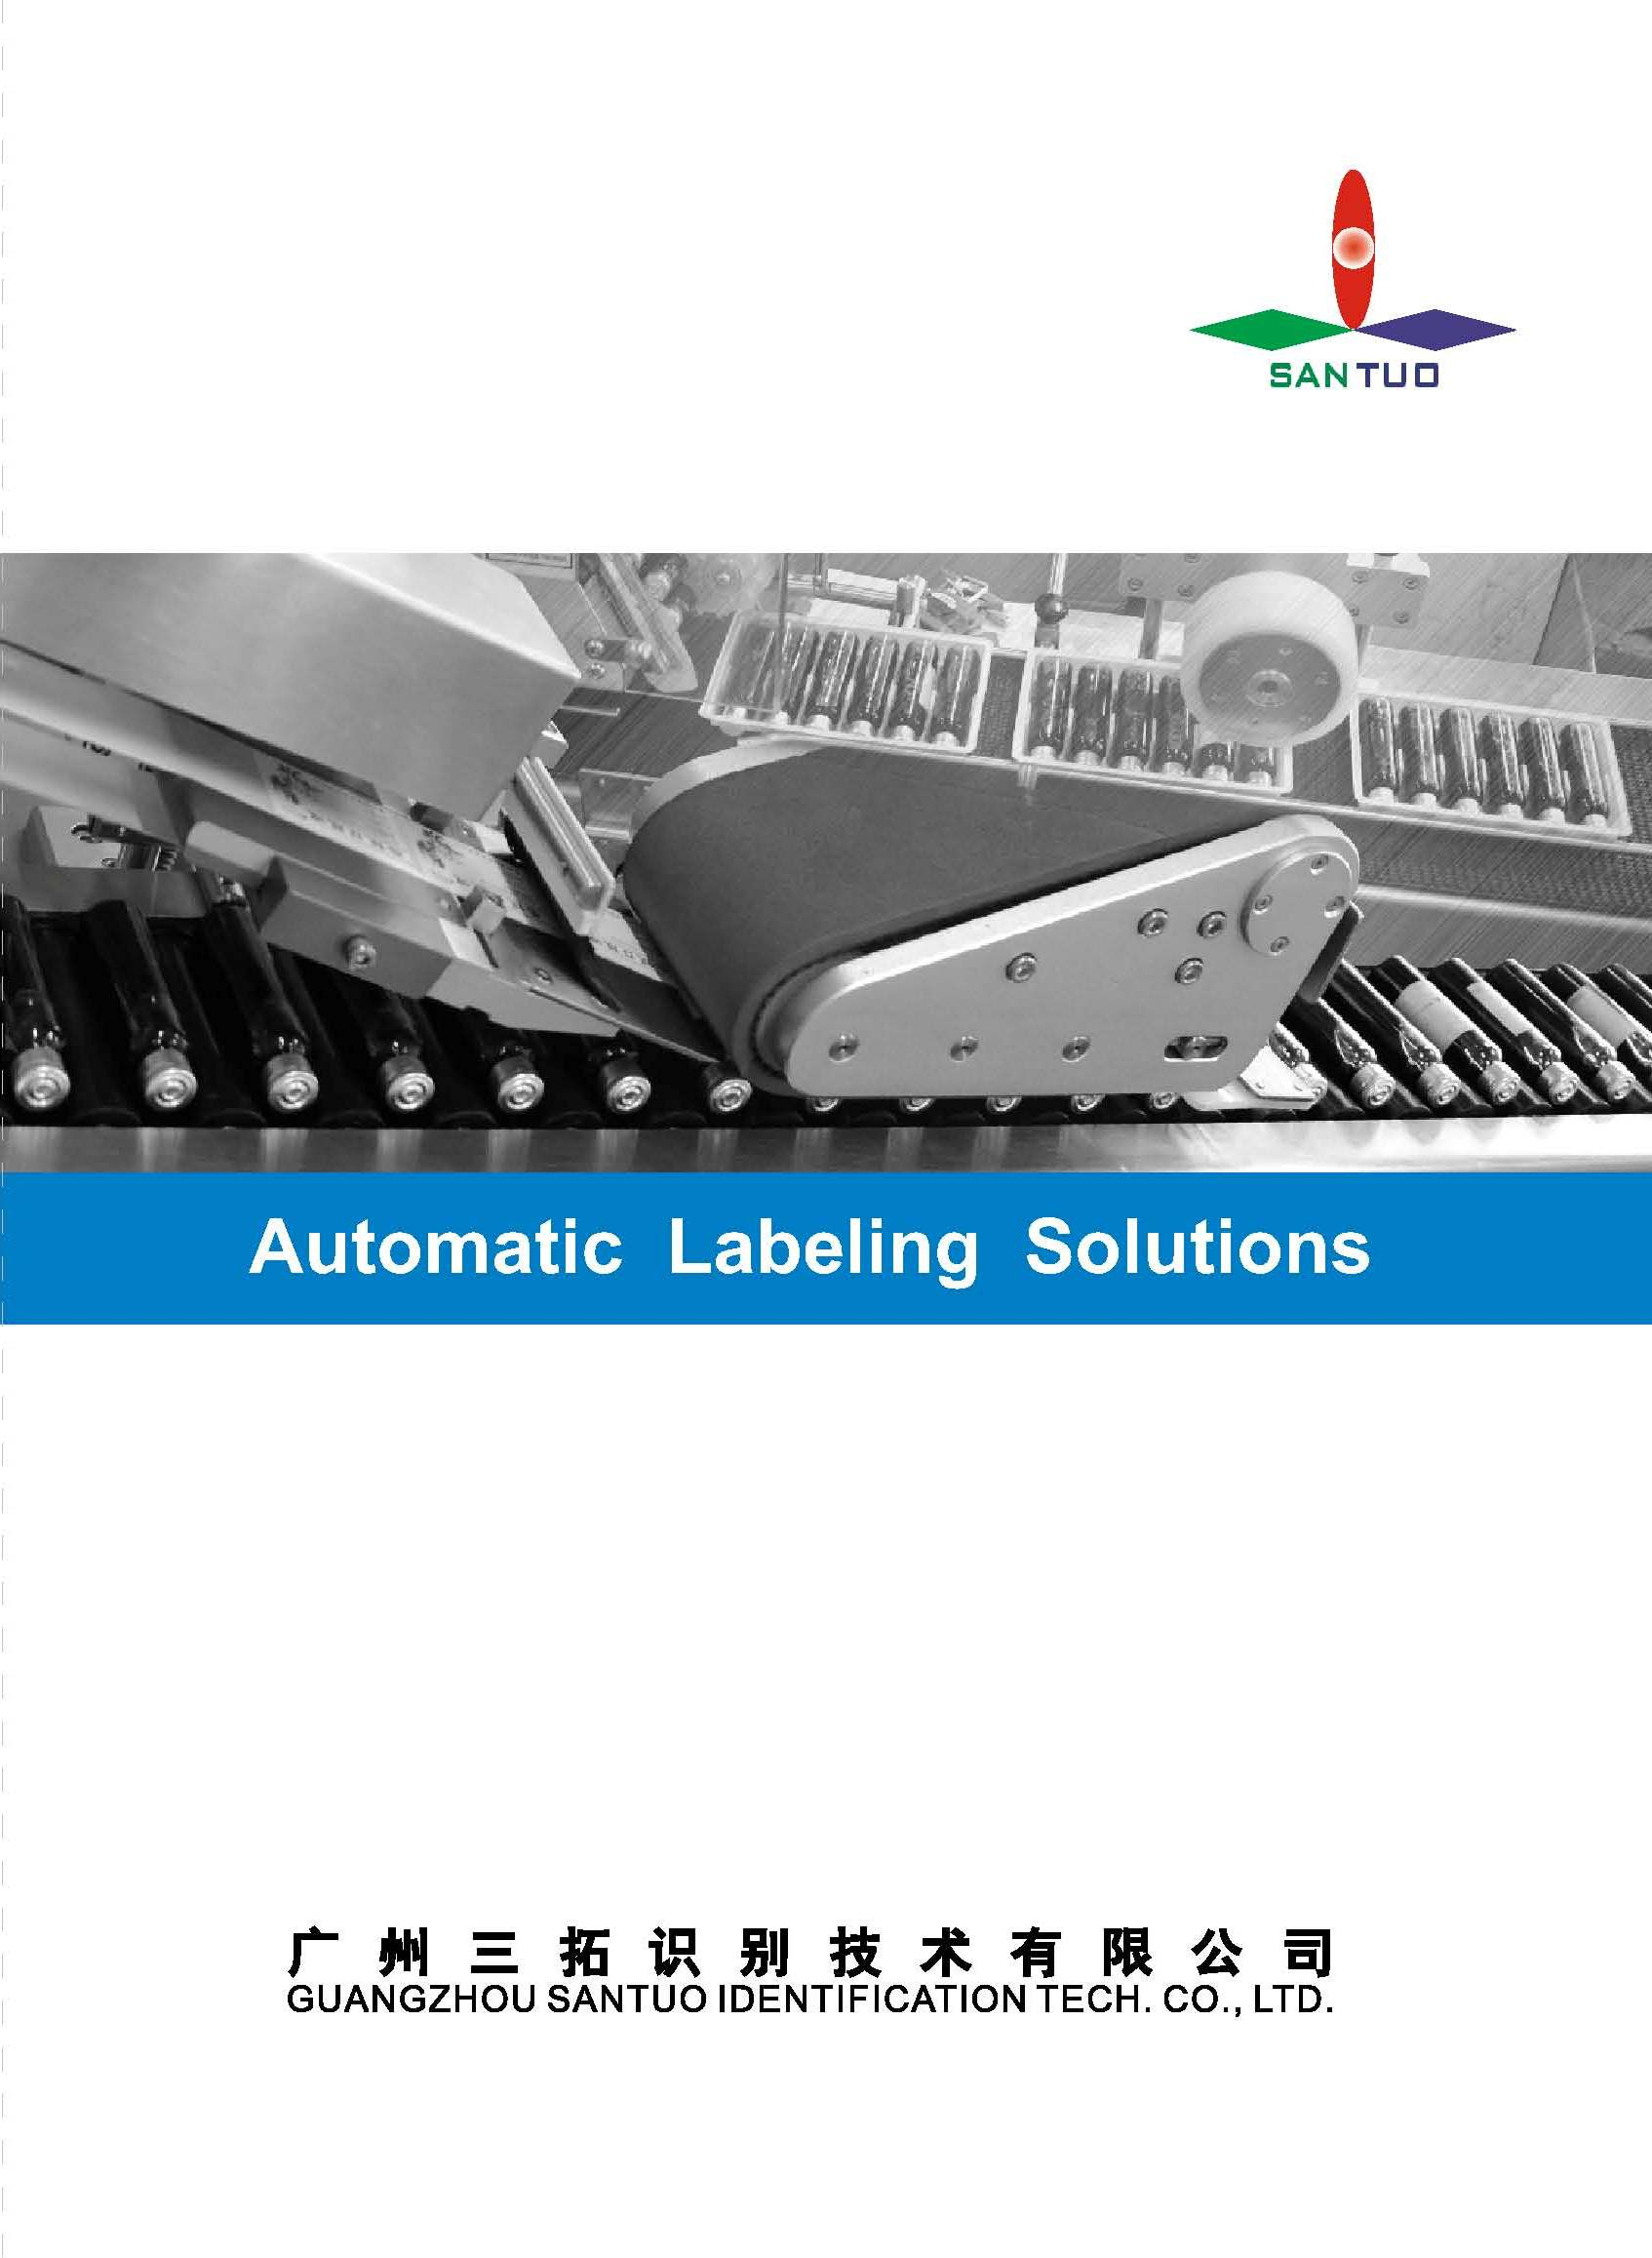 SanTuo Automatic Labeling Machine Brochure